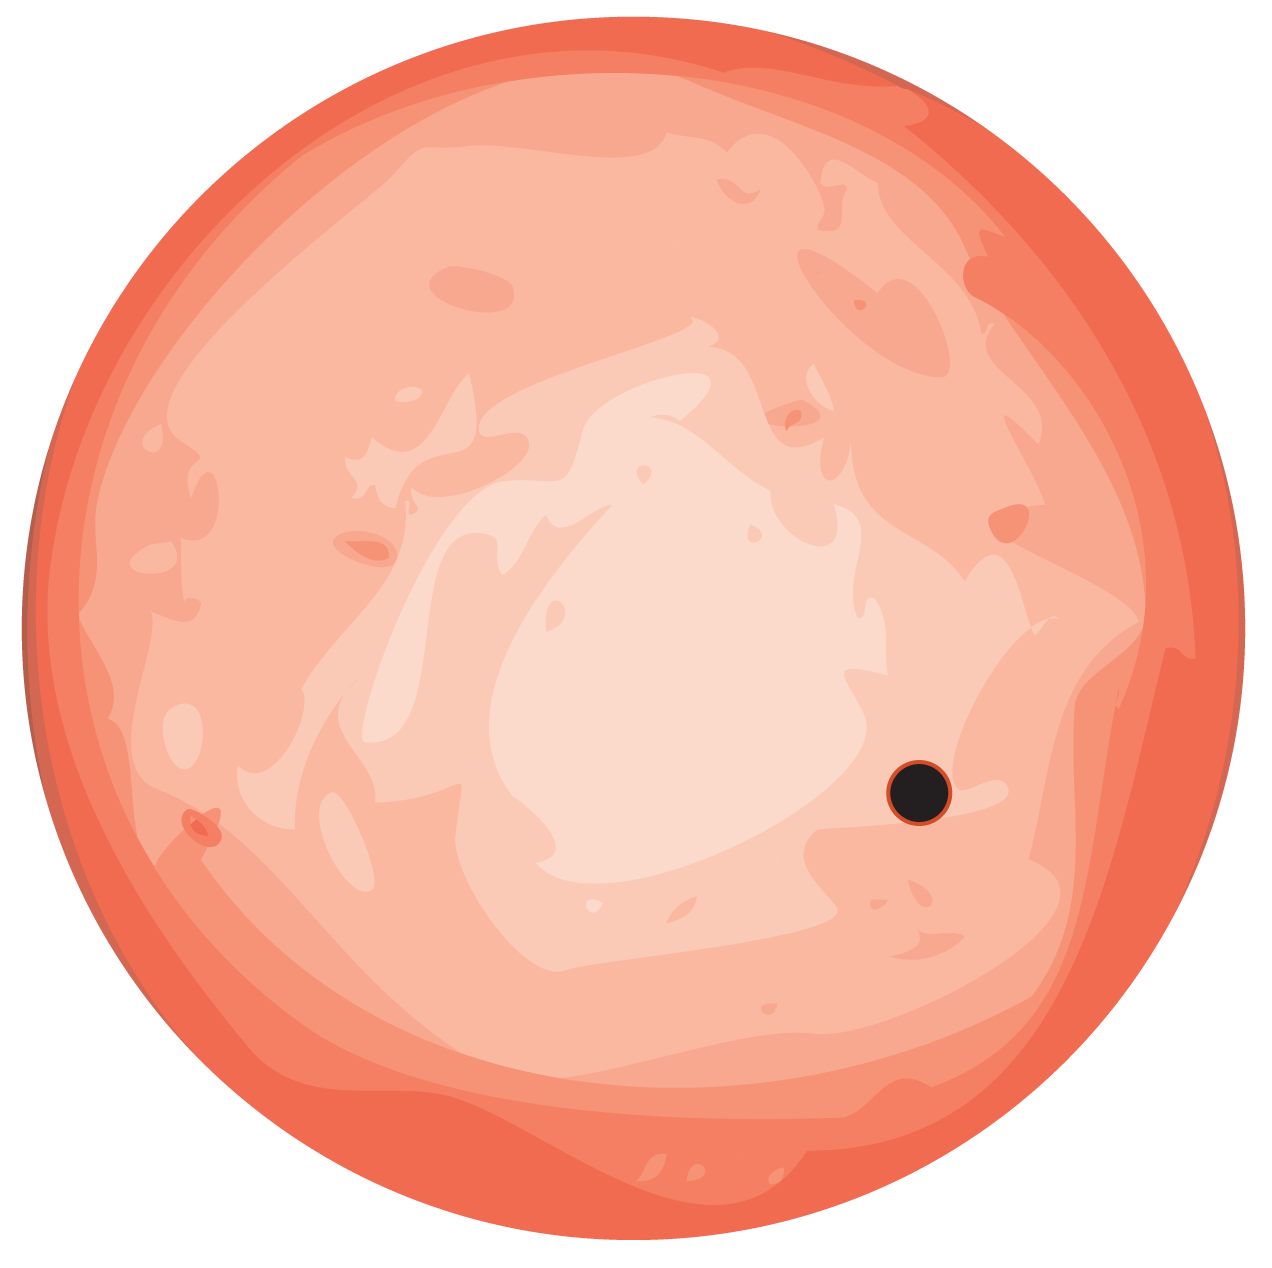 Cartoon planet png. Venus twin earth sized